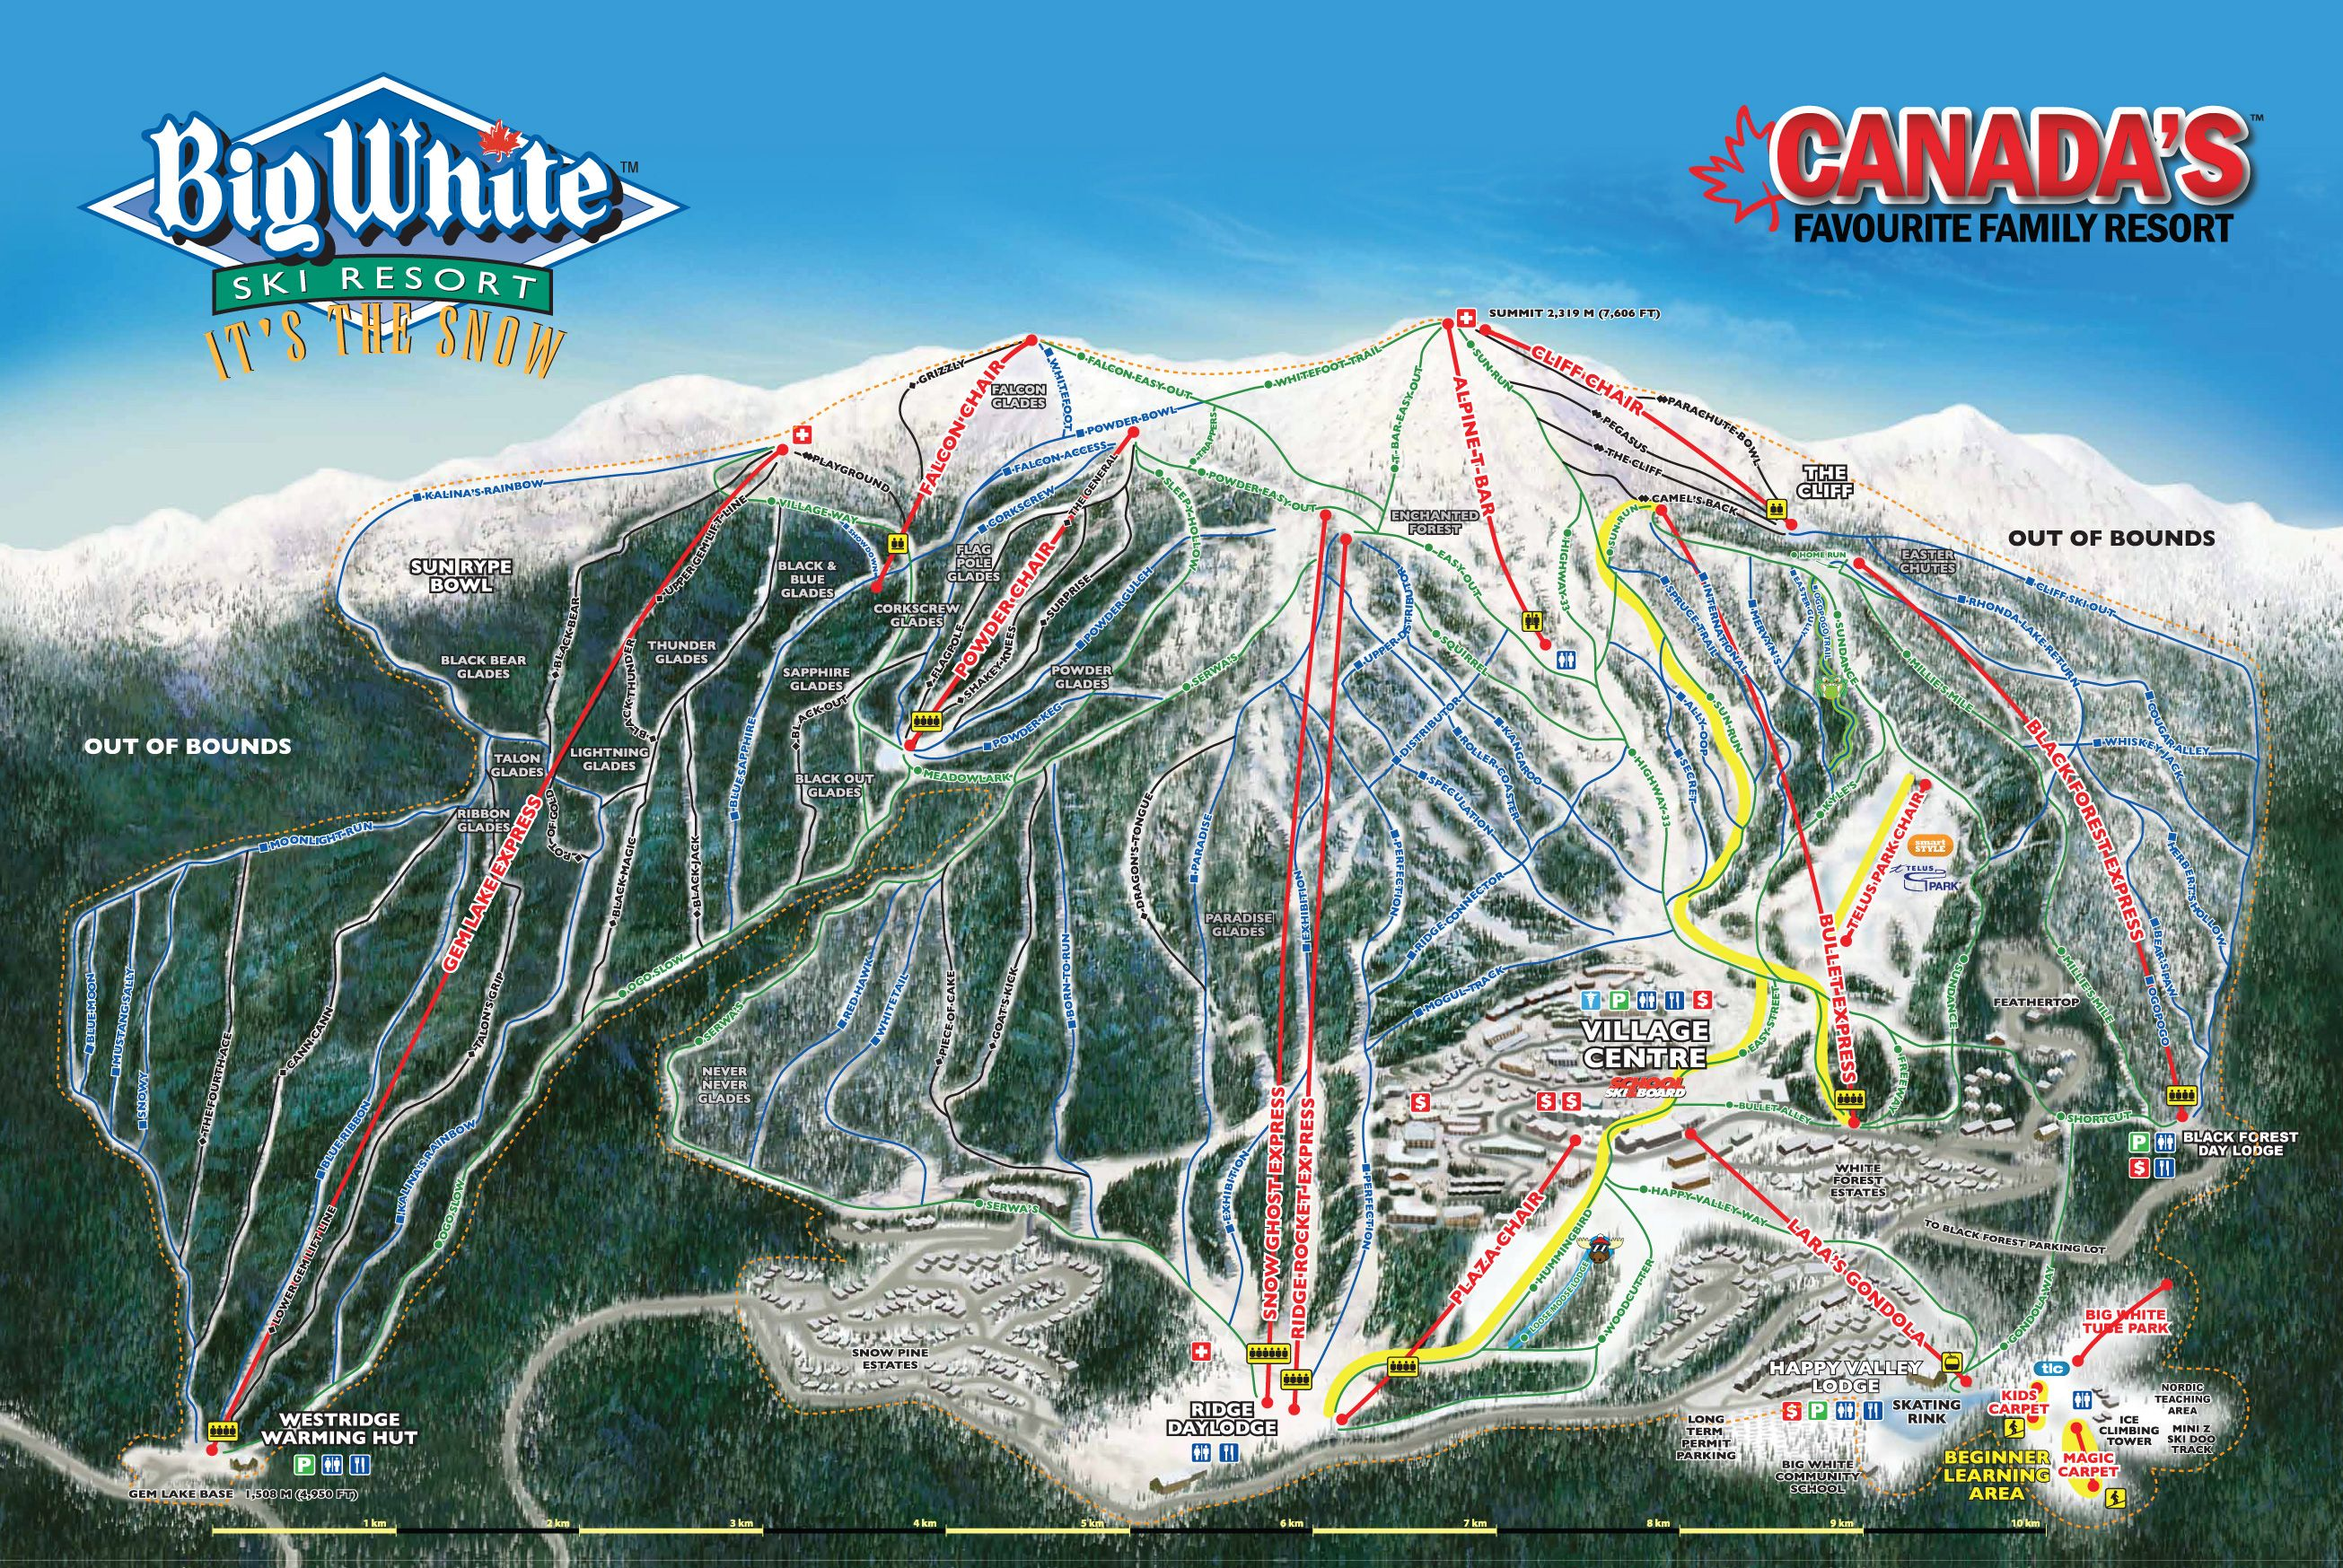 Big White Canada Village Map Big White Ski Resort Ski Run Map 2018 | Canada ski resorts, Ski